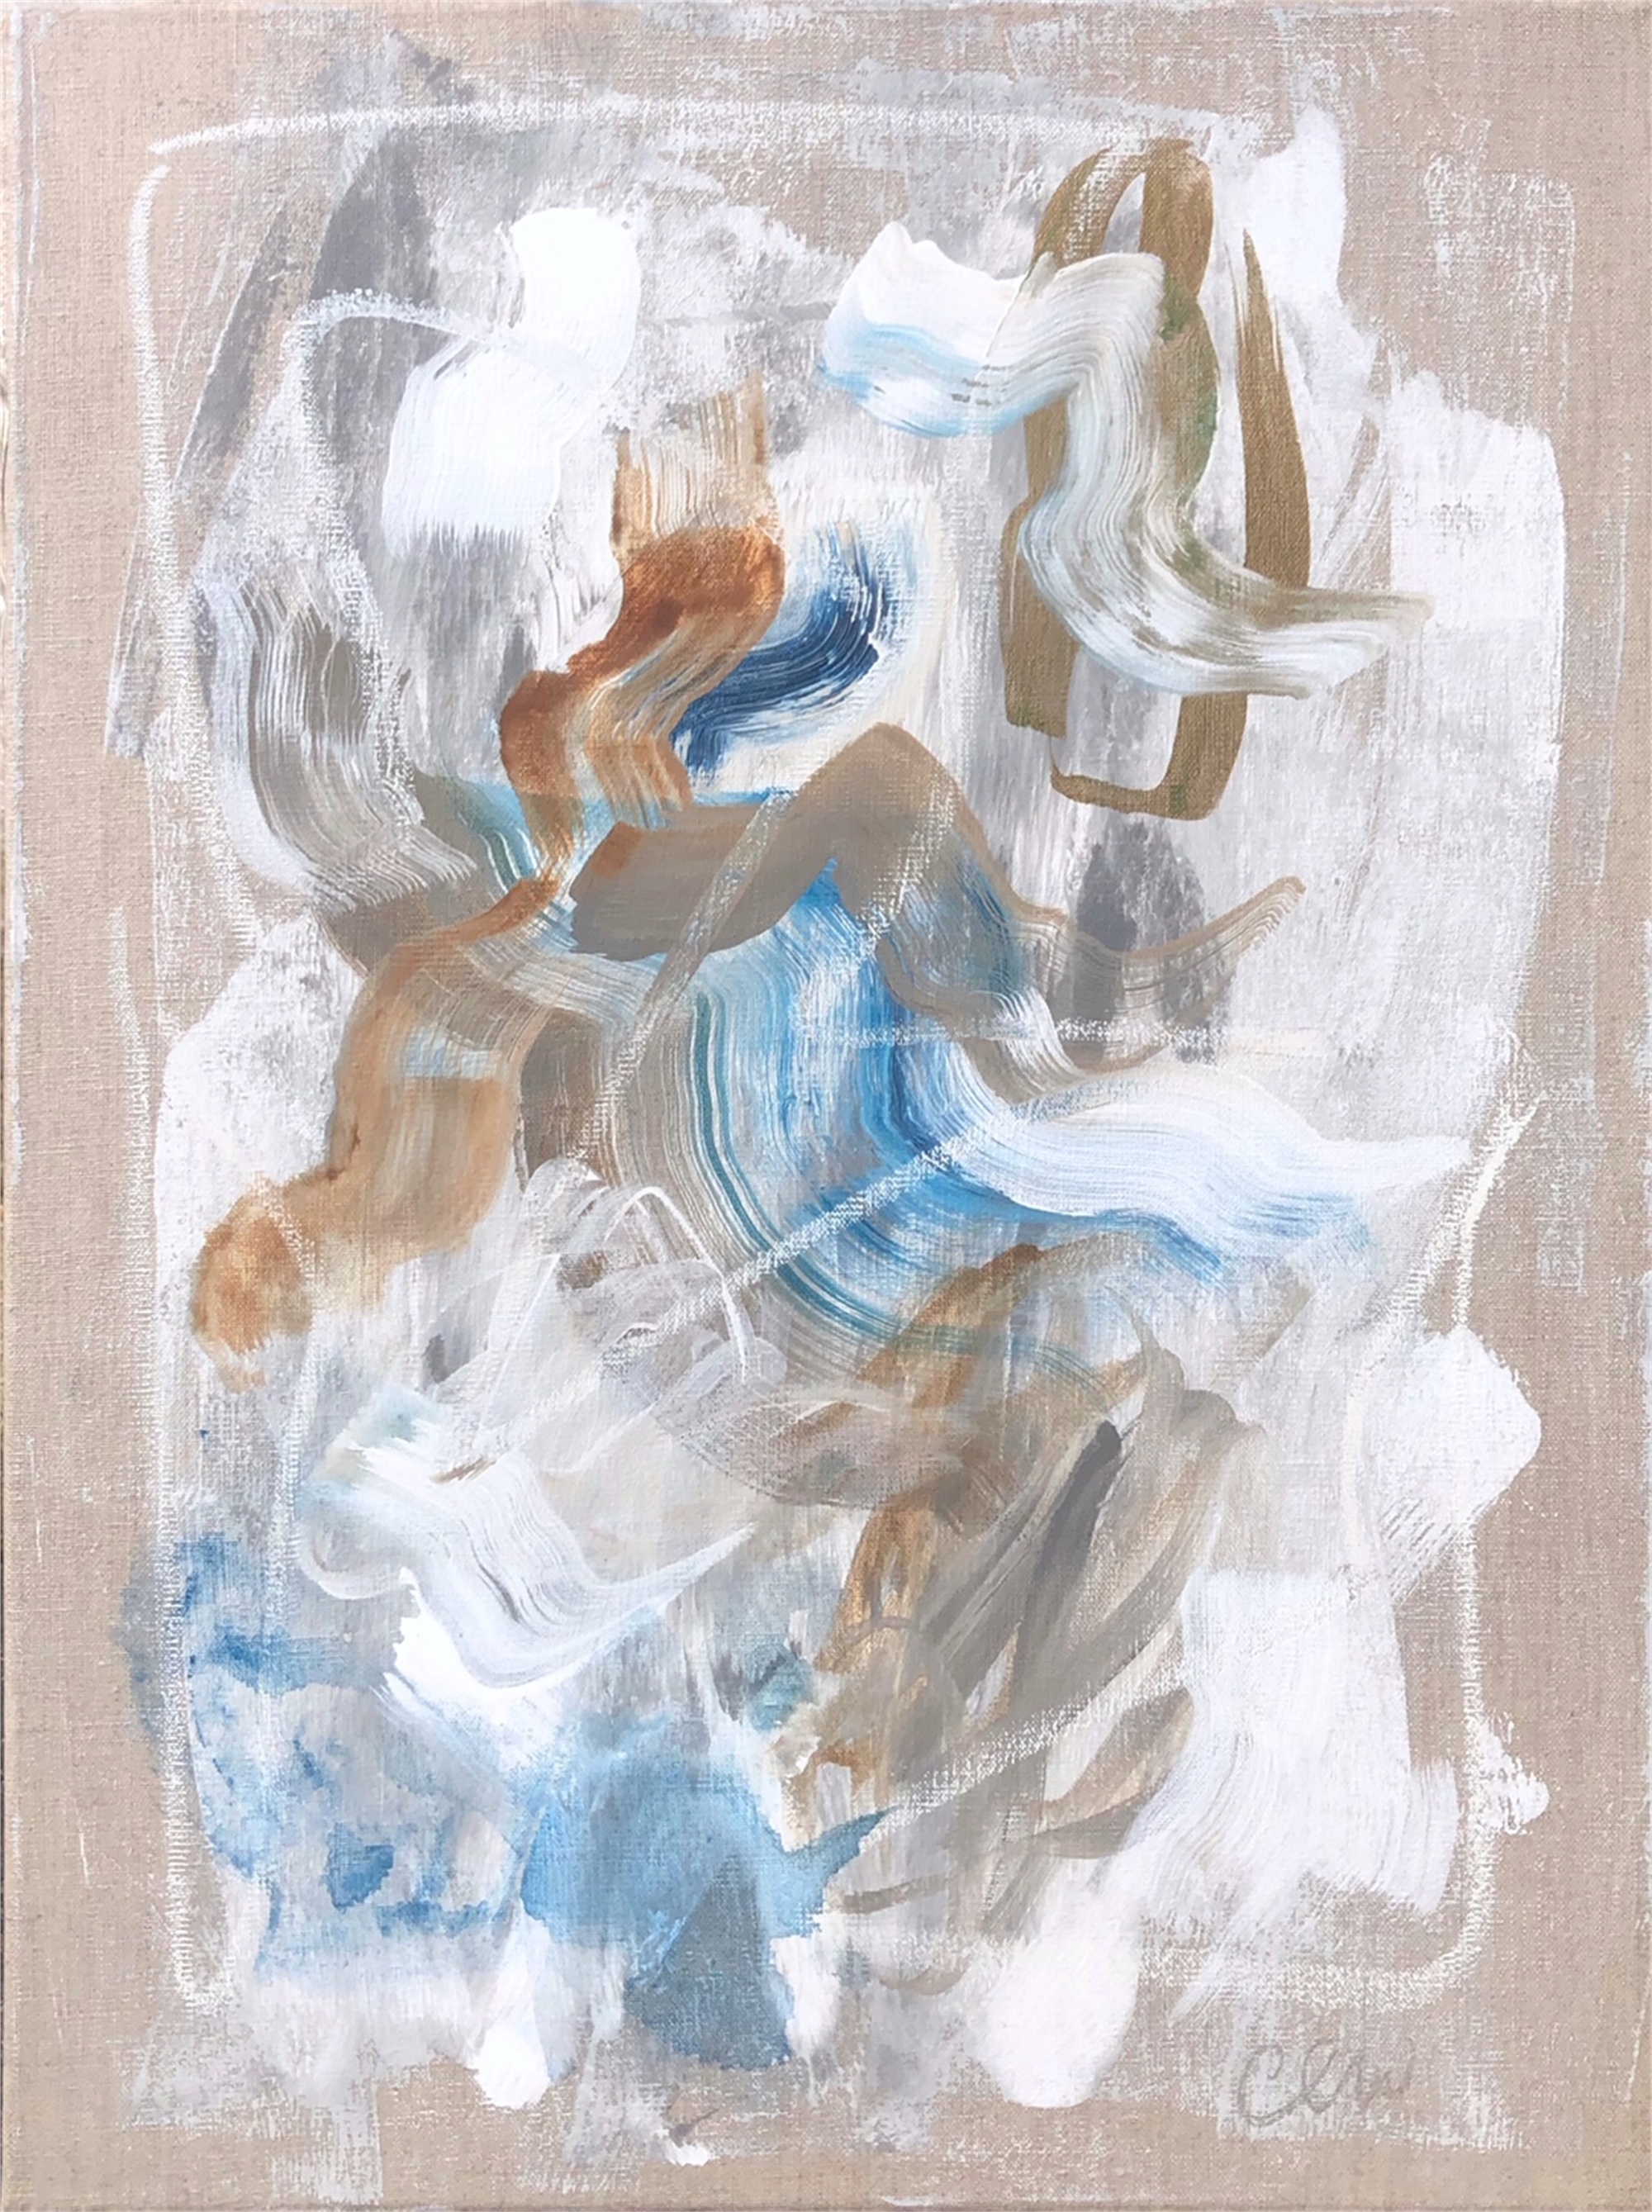 Flow 6 by Catherine Whitis